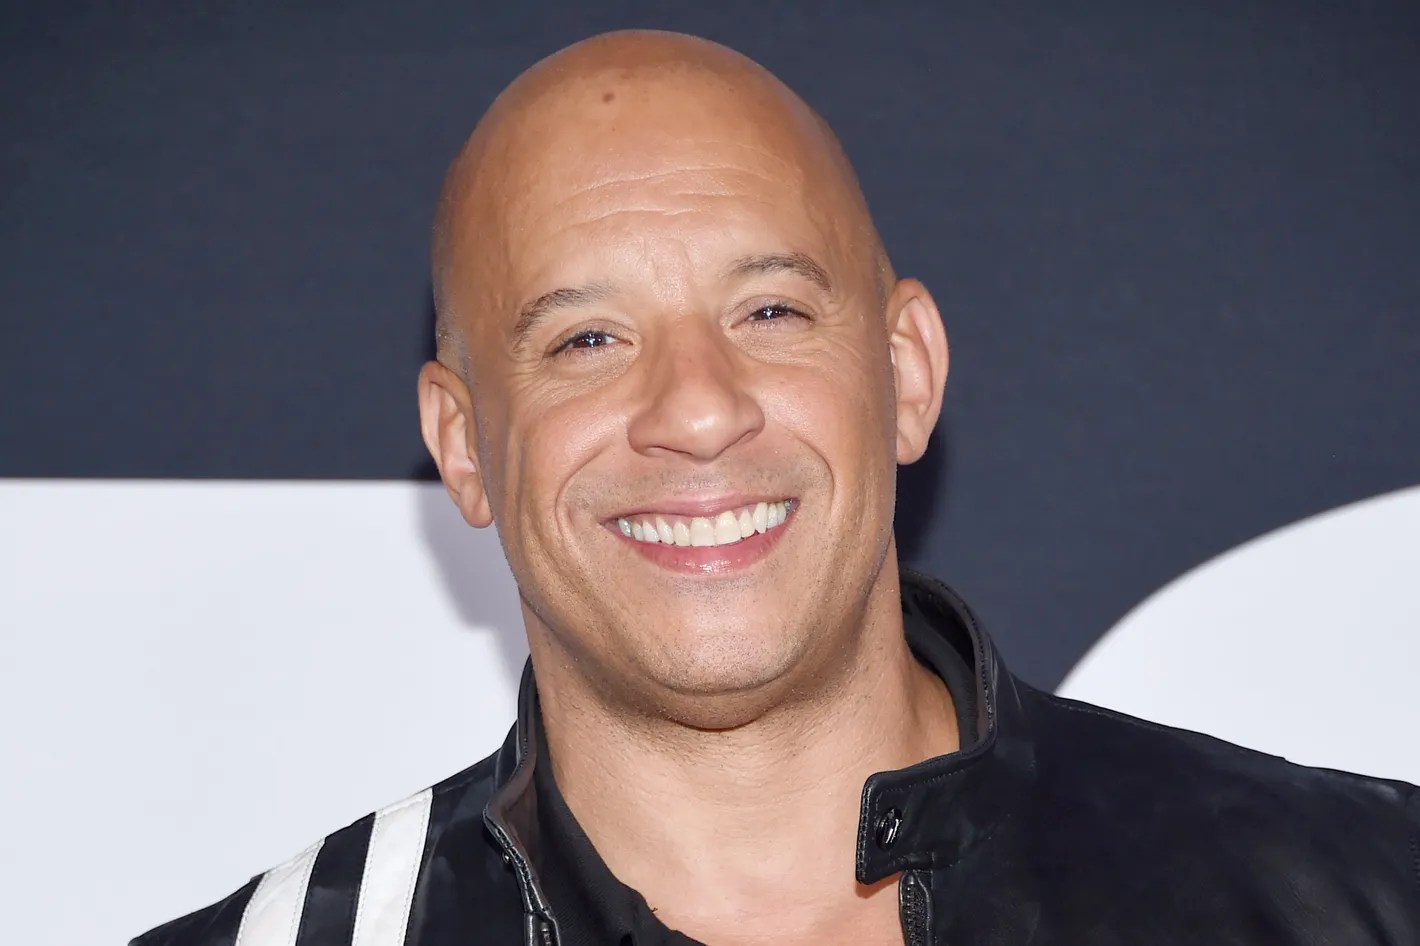 Vin Diesel to Star in Sony's Adaptation of Valiant Comic Bloodshot